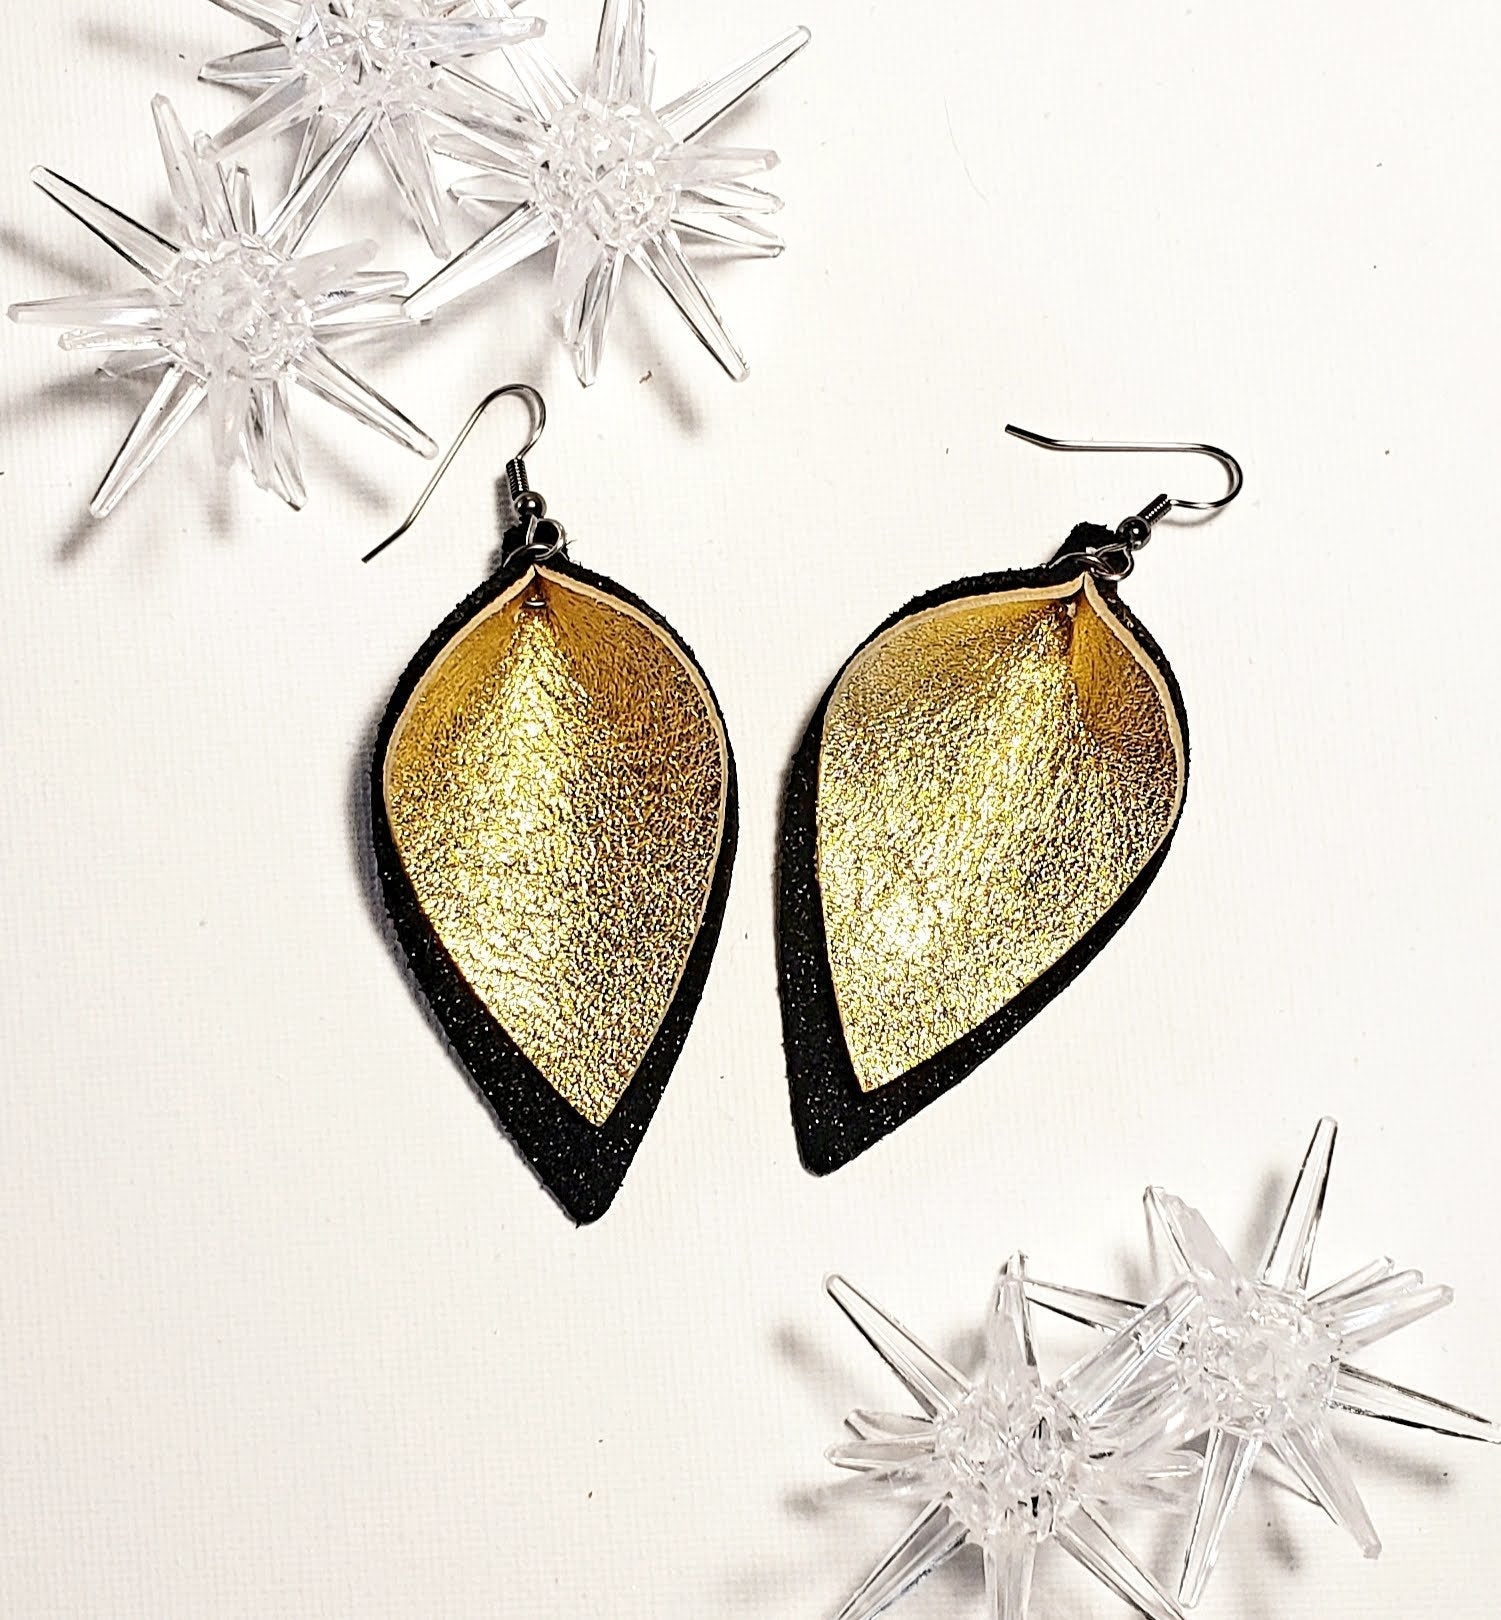 Leather earrings for a gift